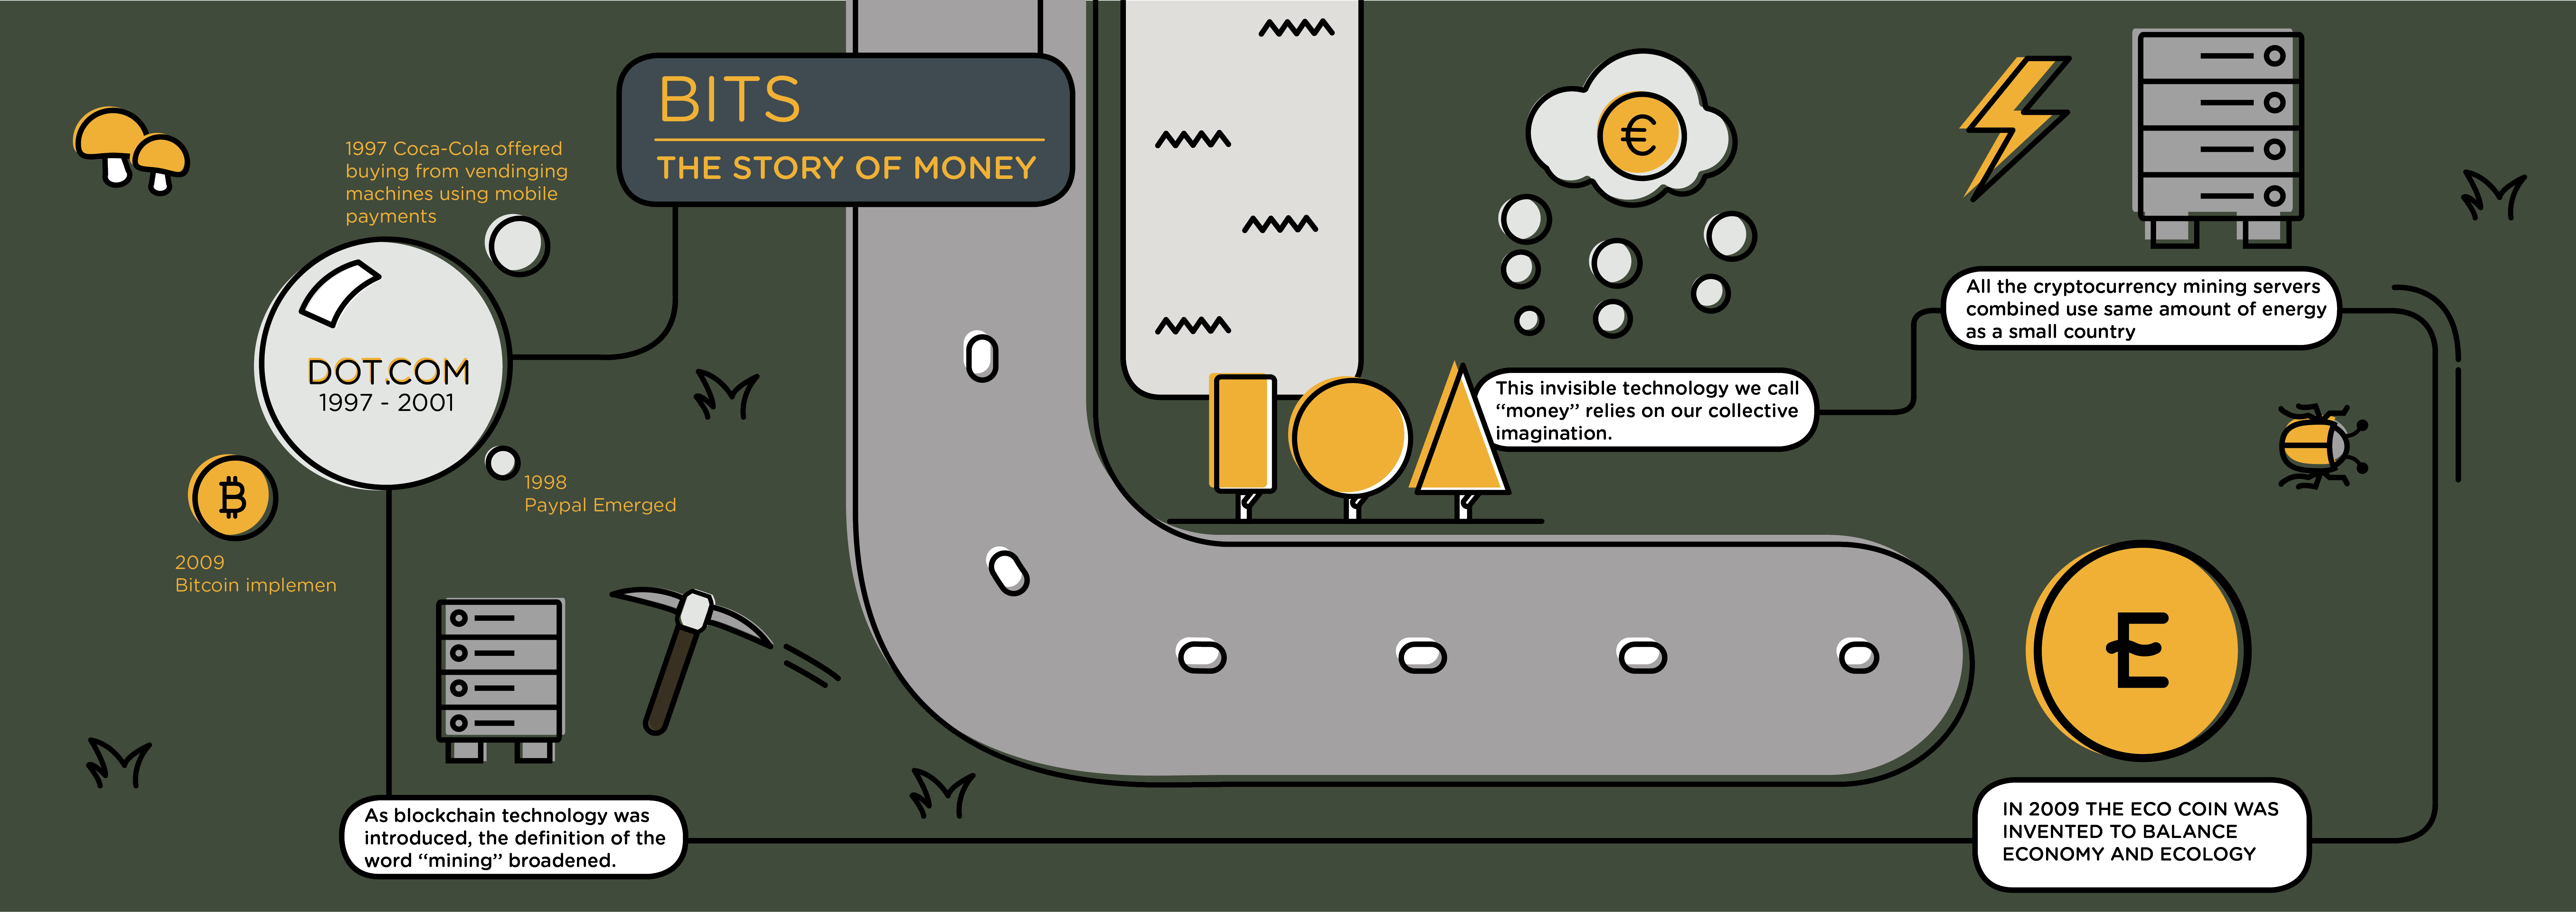 Visual of The Story of Money: Bits